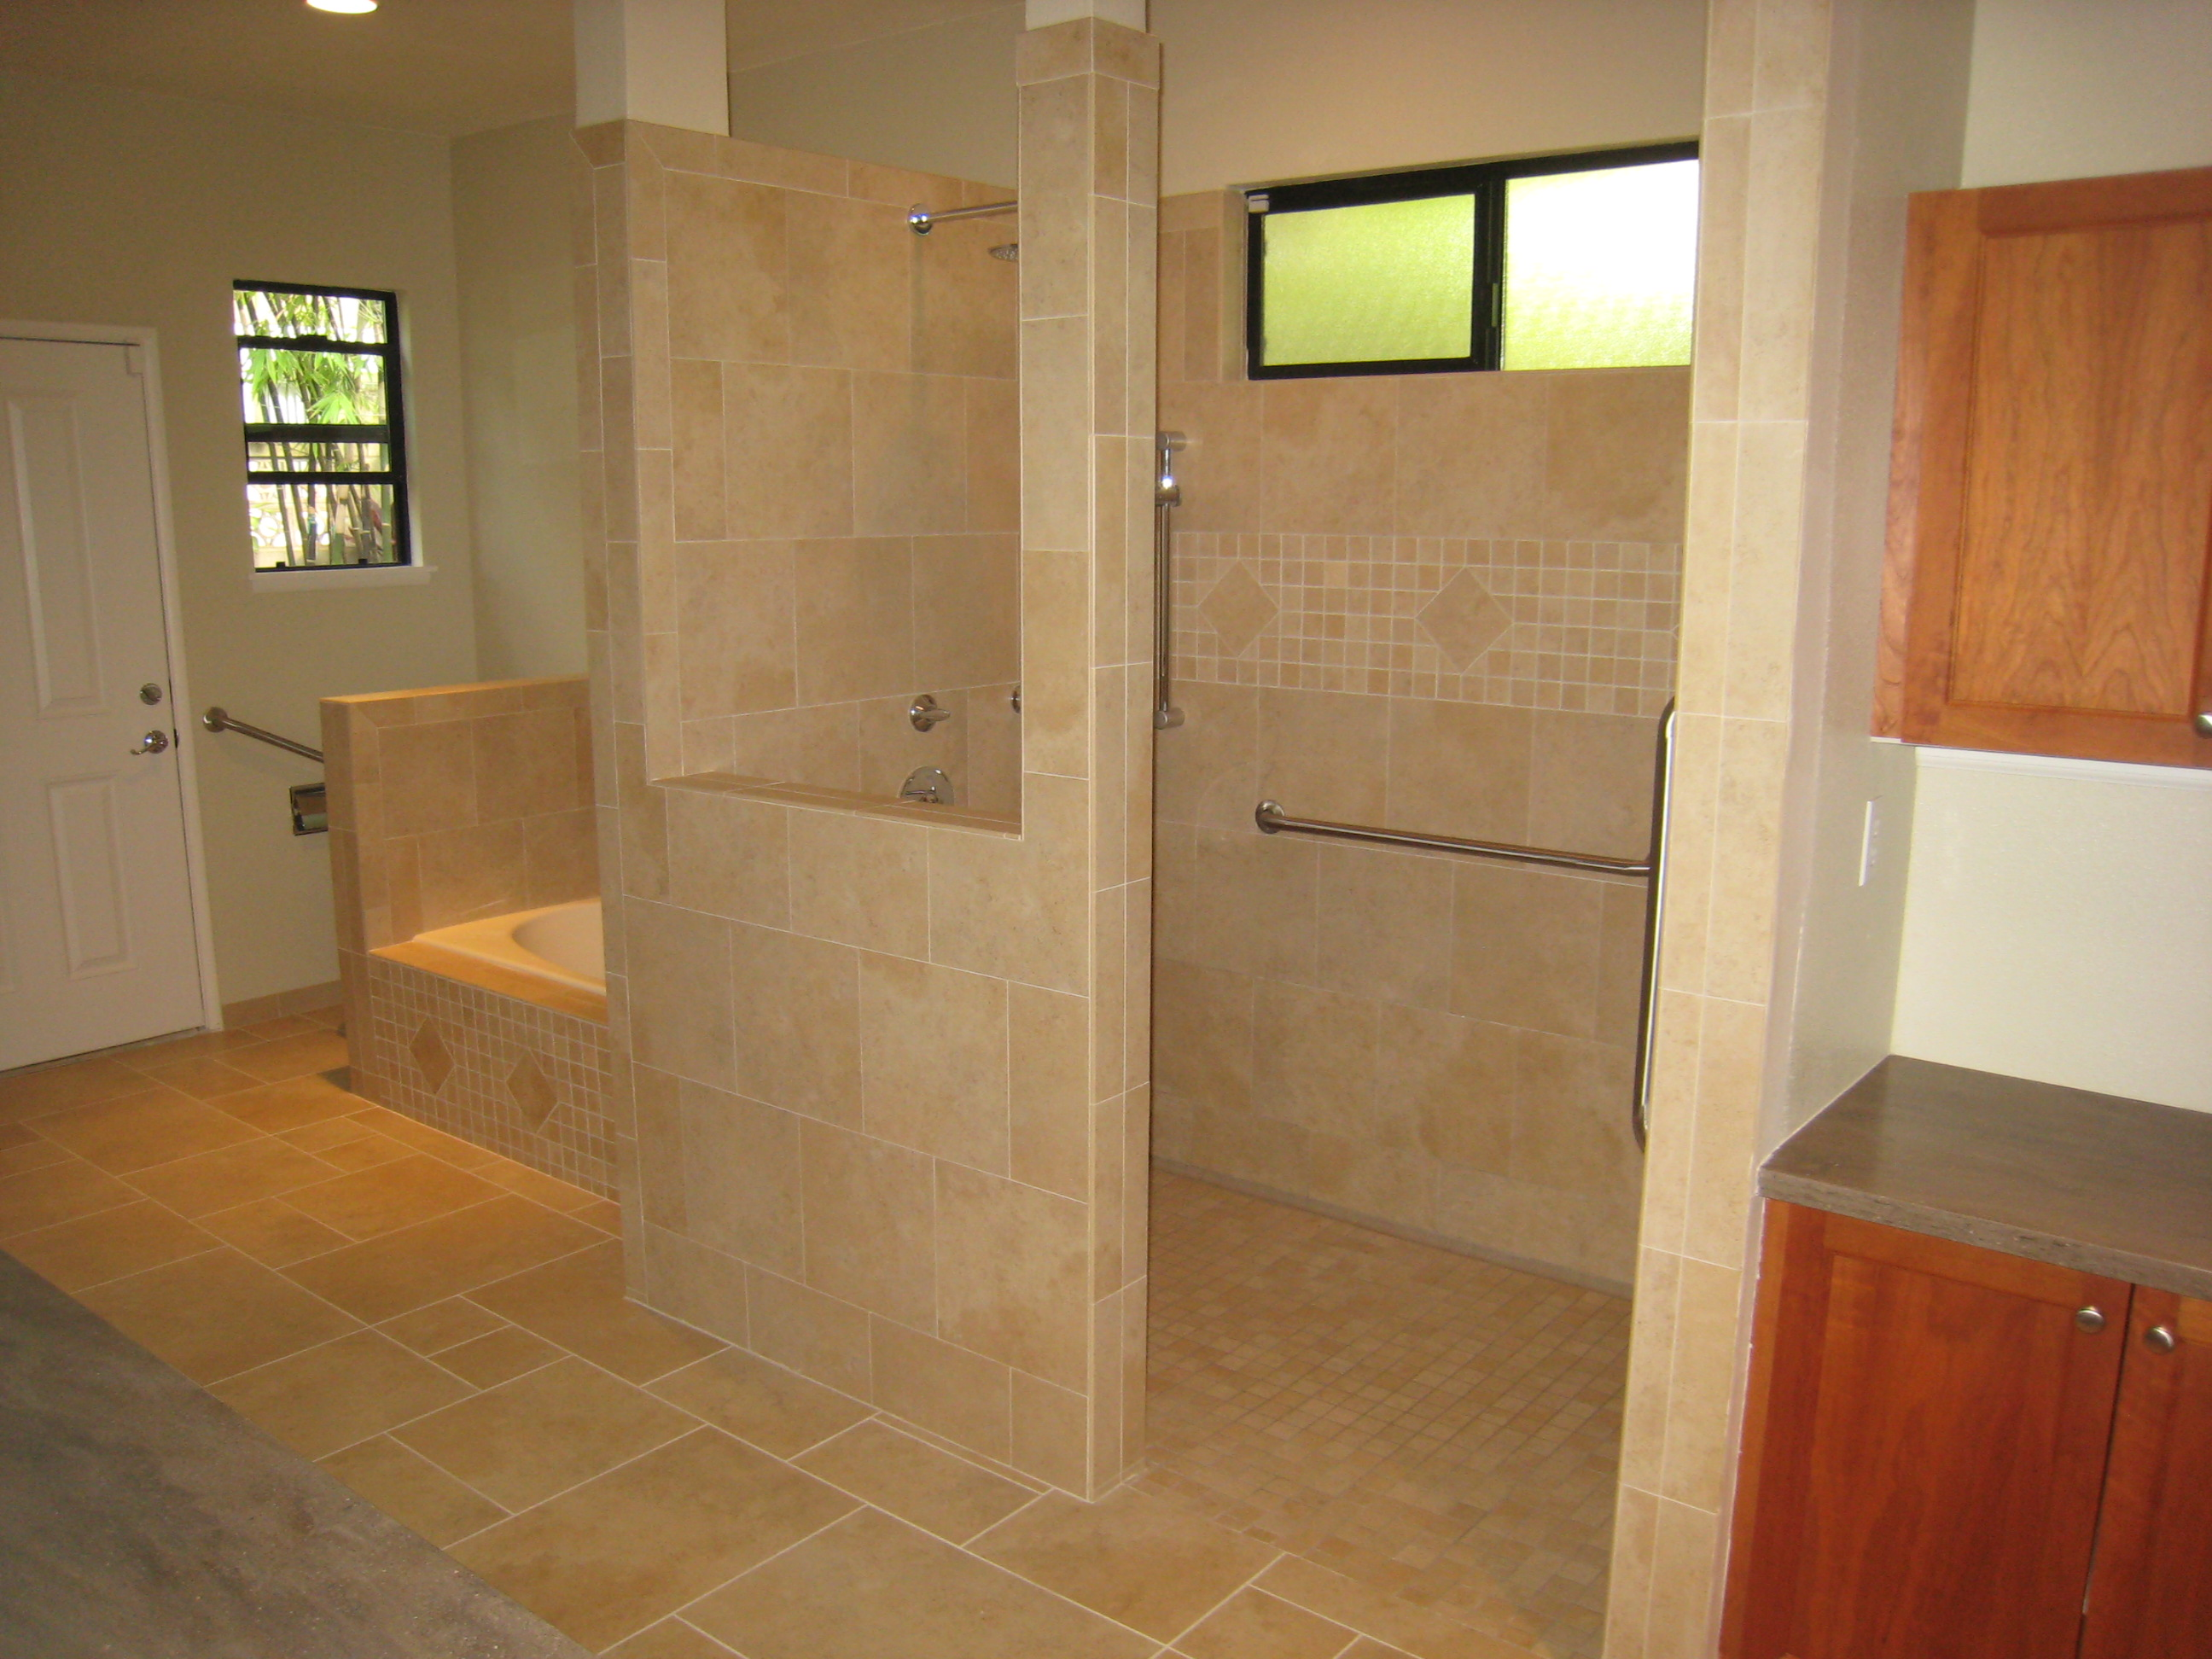 The Aging-in-place Bathroom